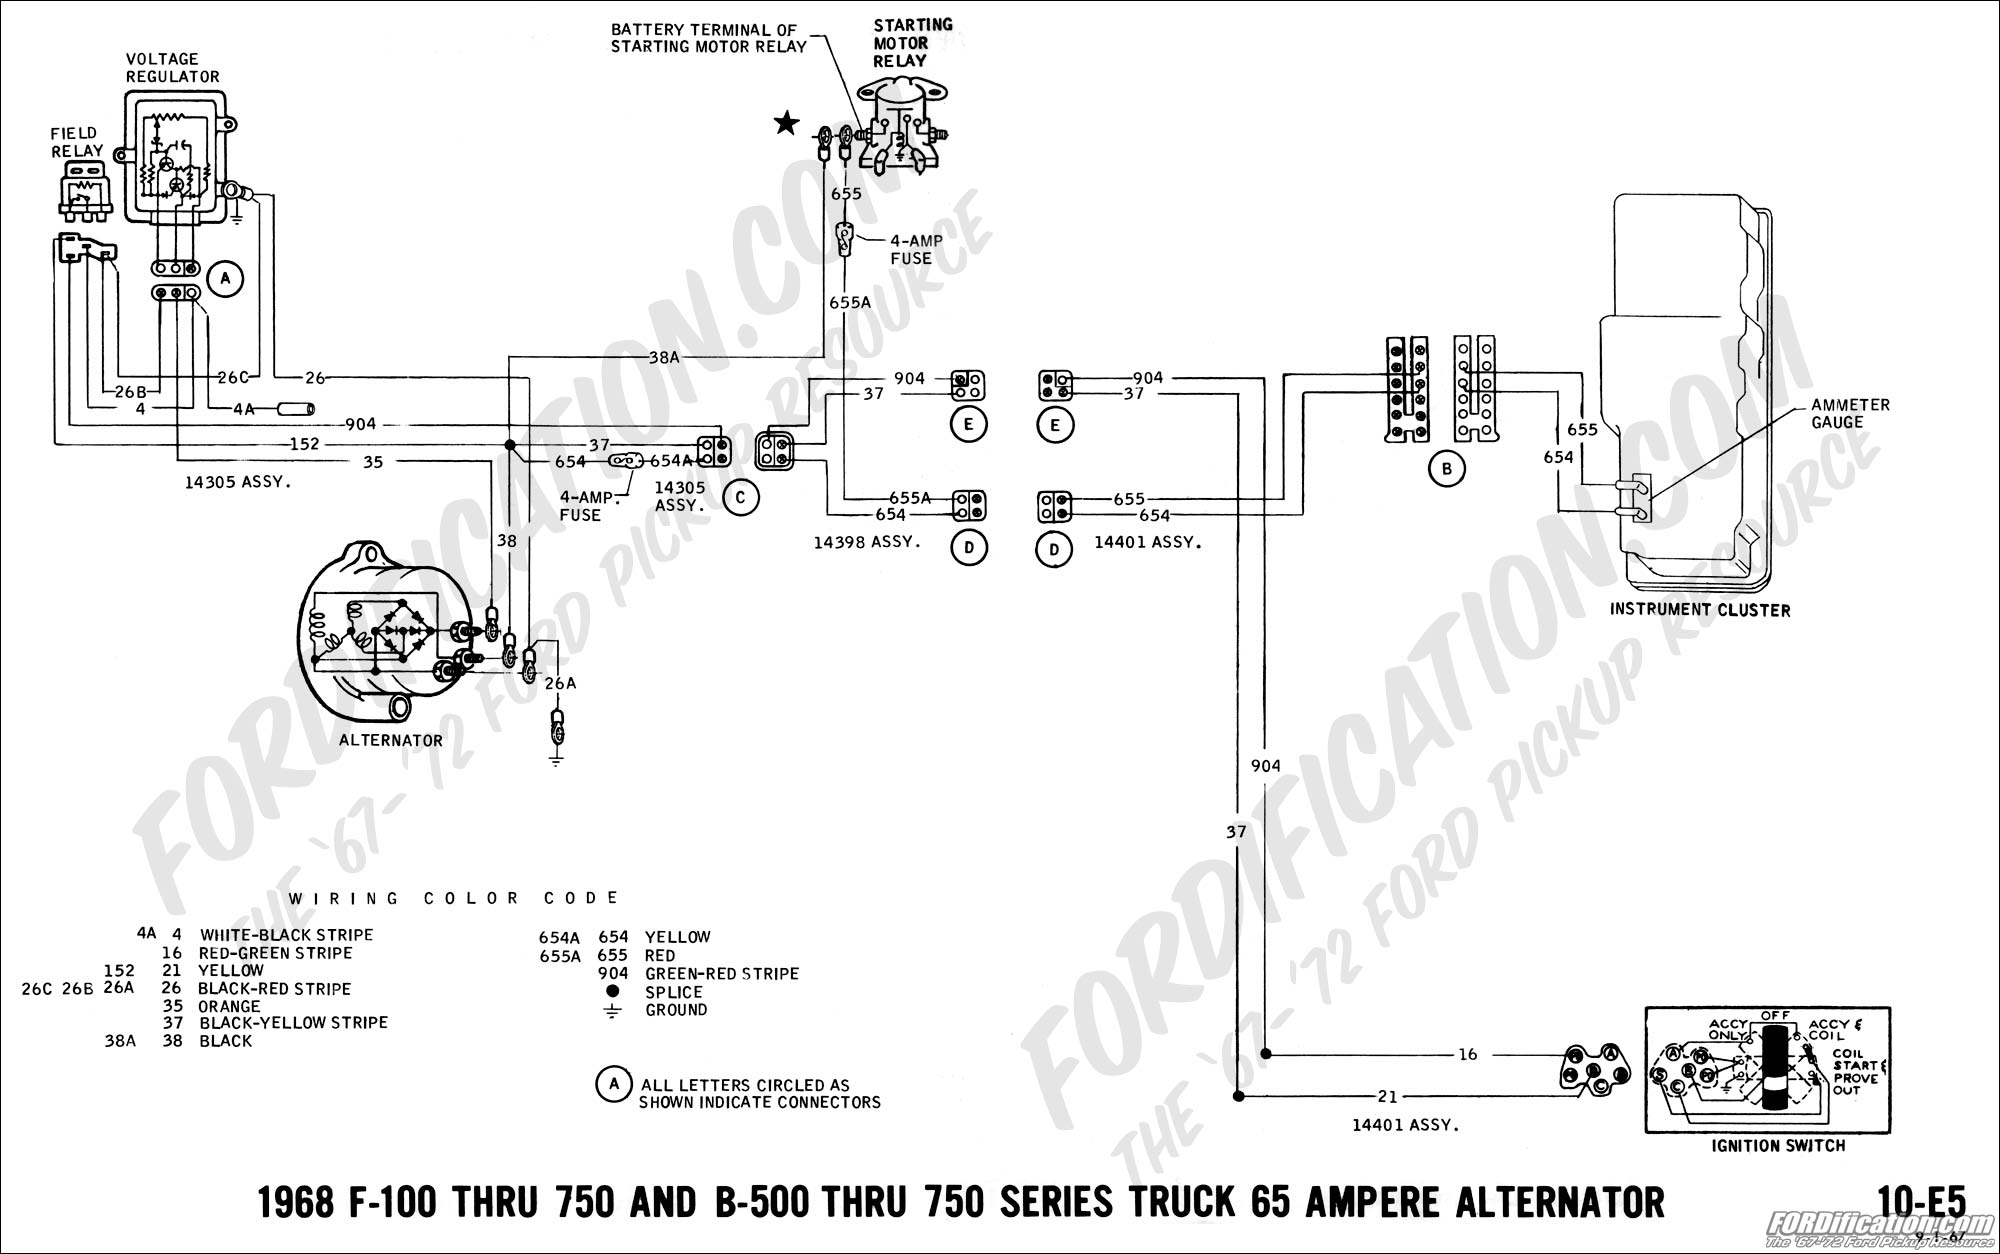 68 07 69 f100 wiring diagram 1973 ford f100 wiring diagram \u2022 wiring 1965 ford alternator wiring diagram at soozxer.org